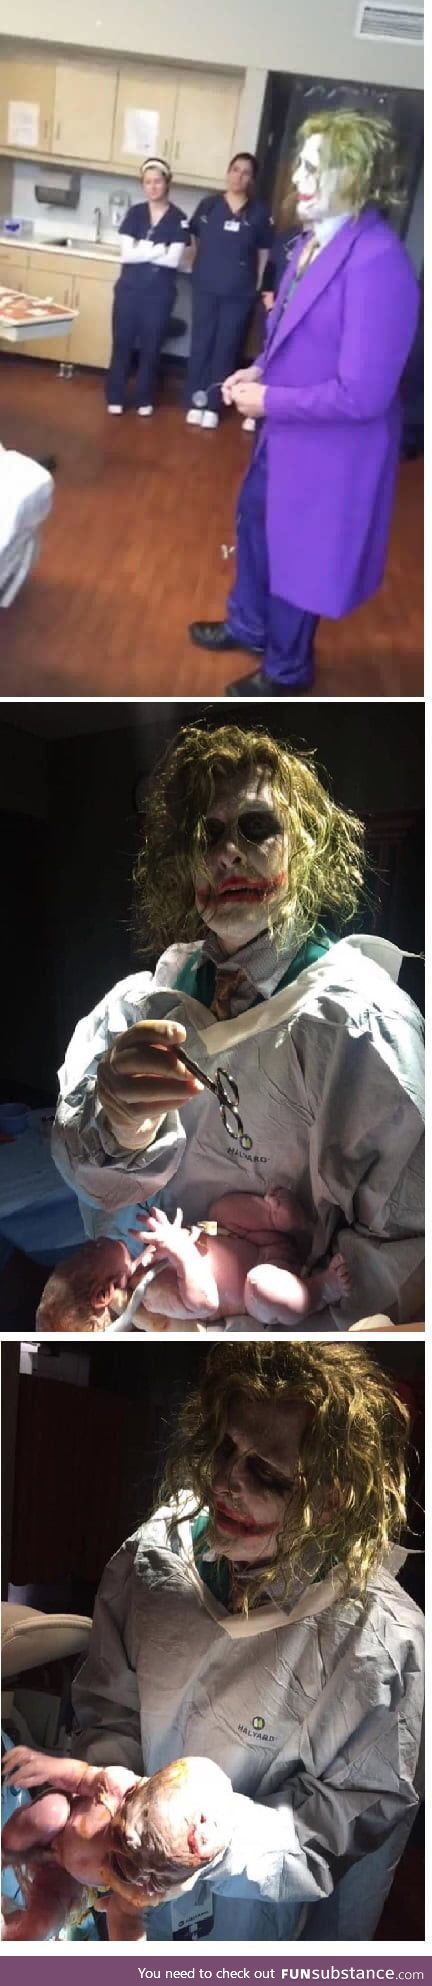 This doctor was at a Halloween party and one of his patients went into labor